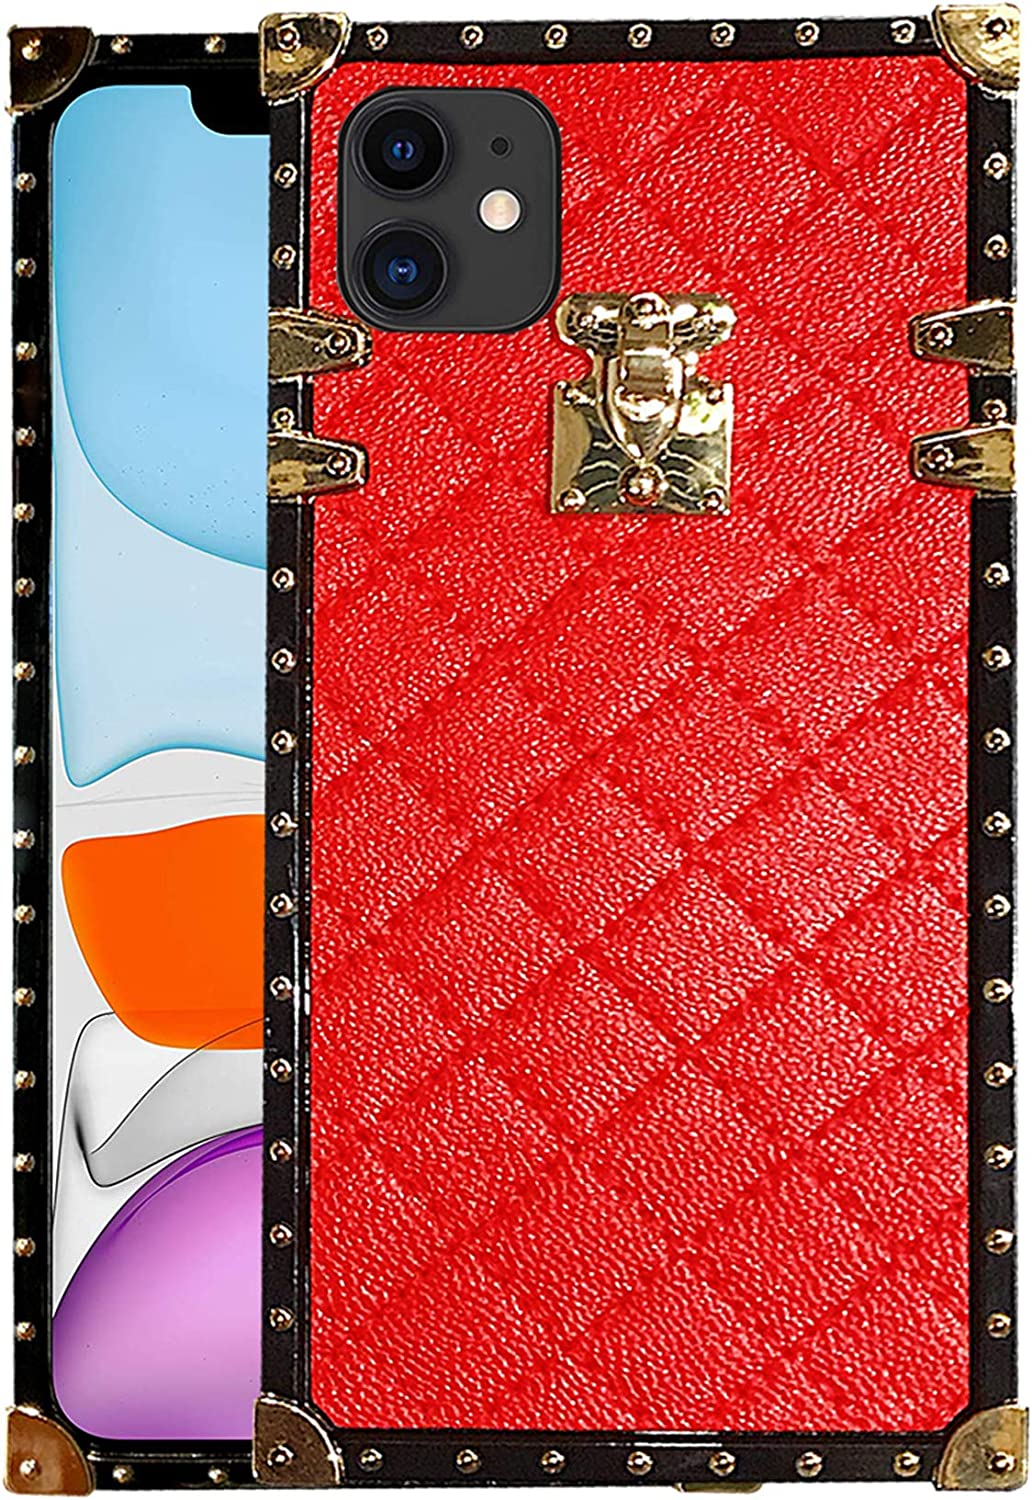 iPhone11 Cover Square Compatible with iPhone 11 case Luxury Trunk Box Durable Glitter Girly Cases for 11iPhone iphone2019 1phone i Phone IP iPhones Bumper fundas Coque 6.1 inch (Red)